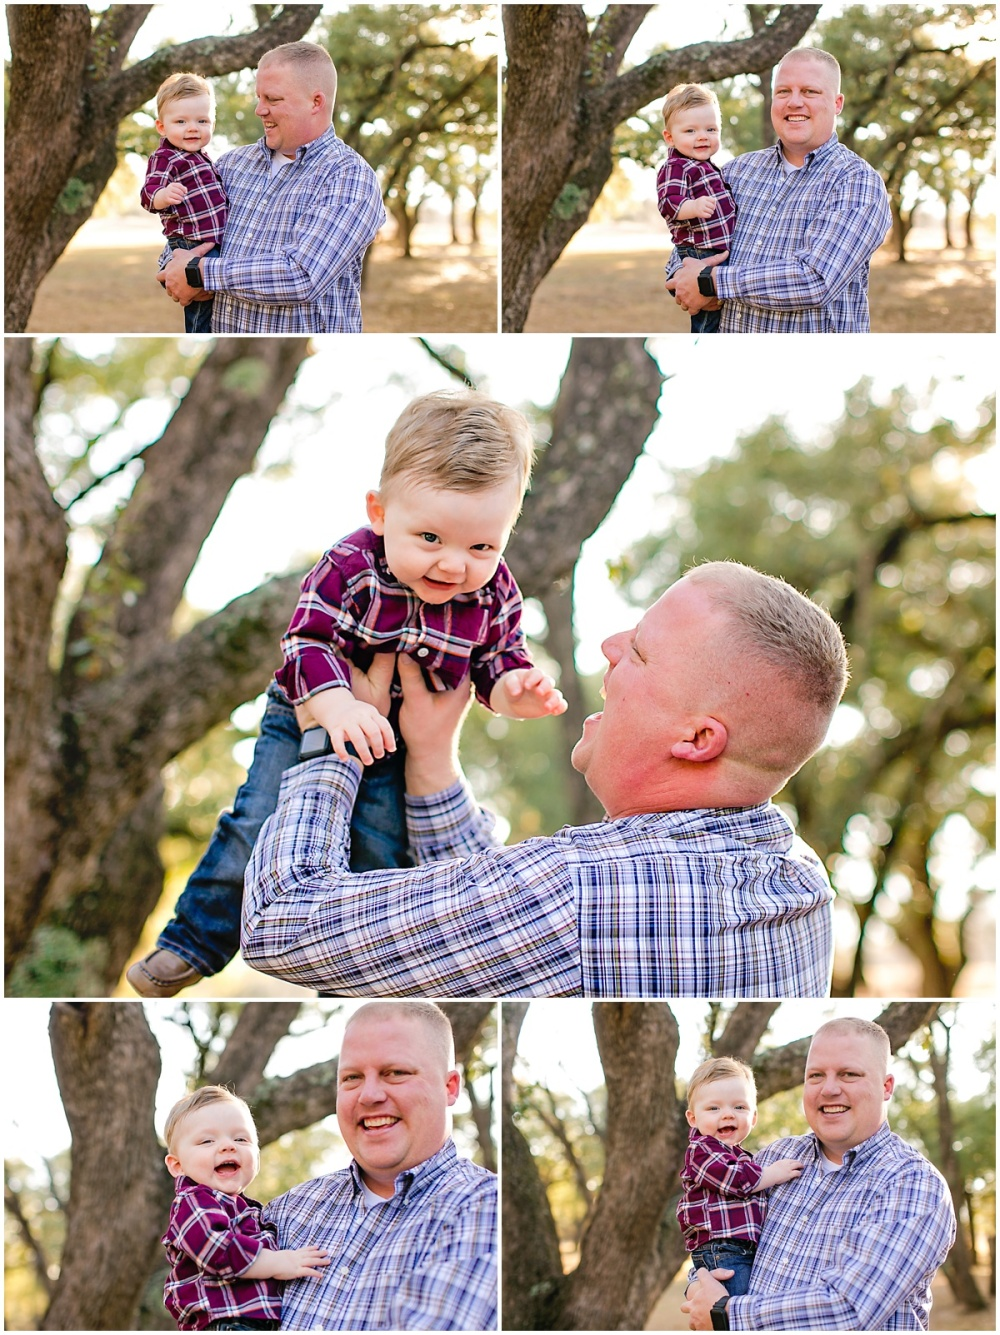 Family-Children-Maternity-Portraits-San-Antonio-Hill-Country-Texas-Carly-Barton-Photography_0107.jpg